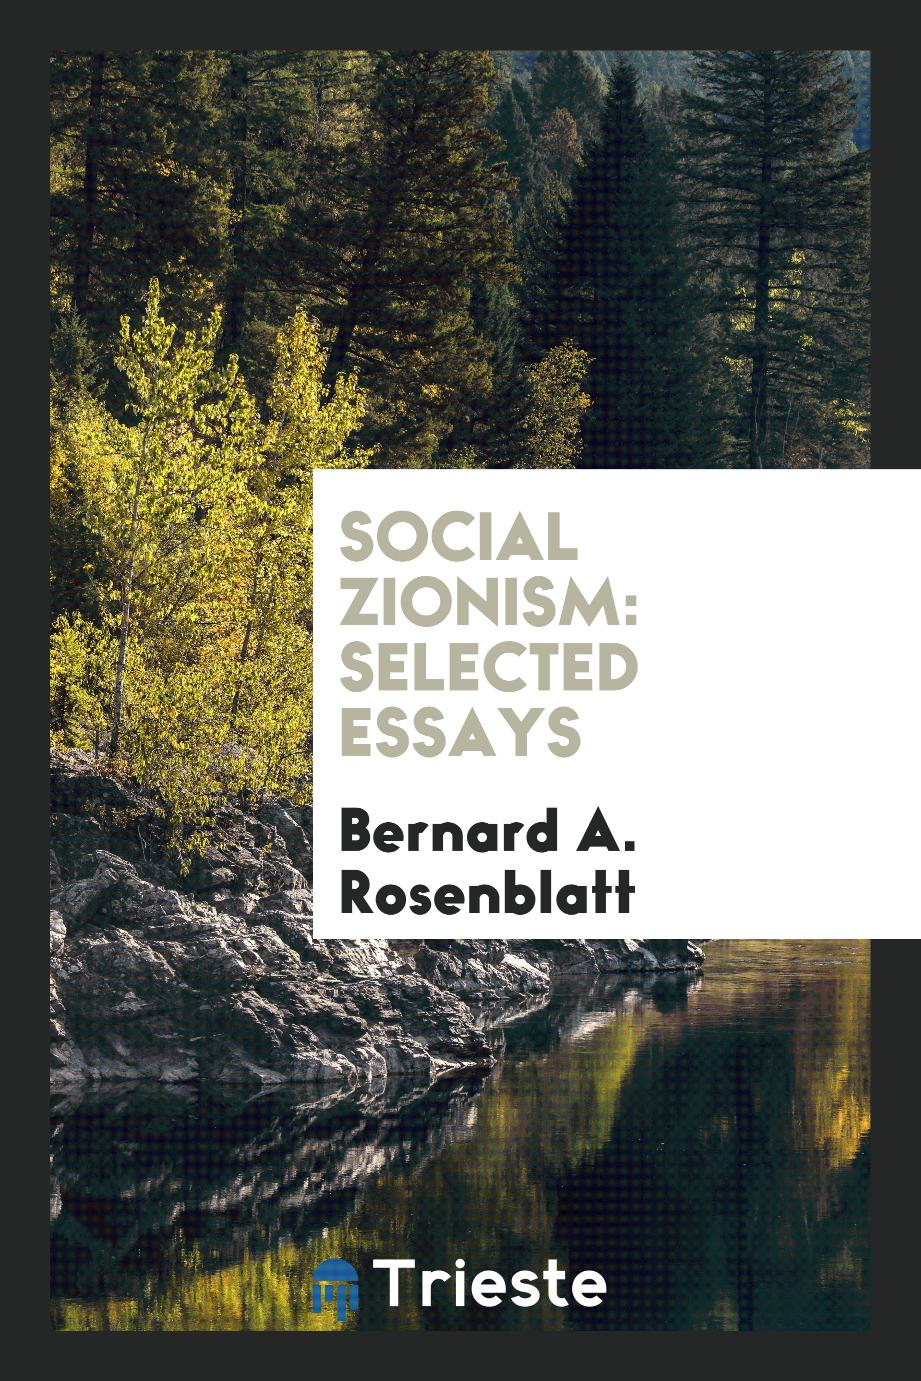 Social Zionism: Selected Essays